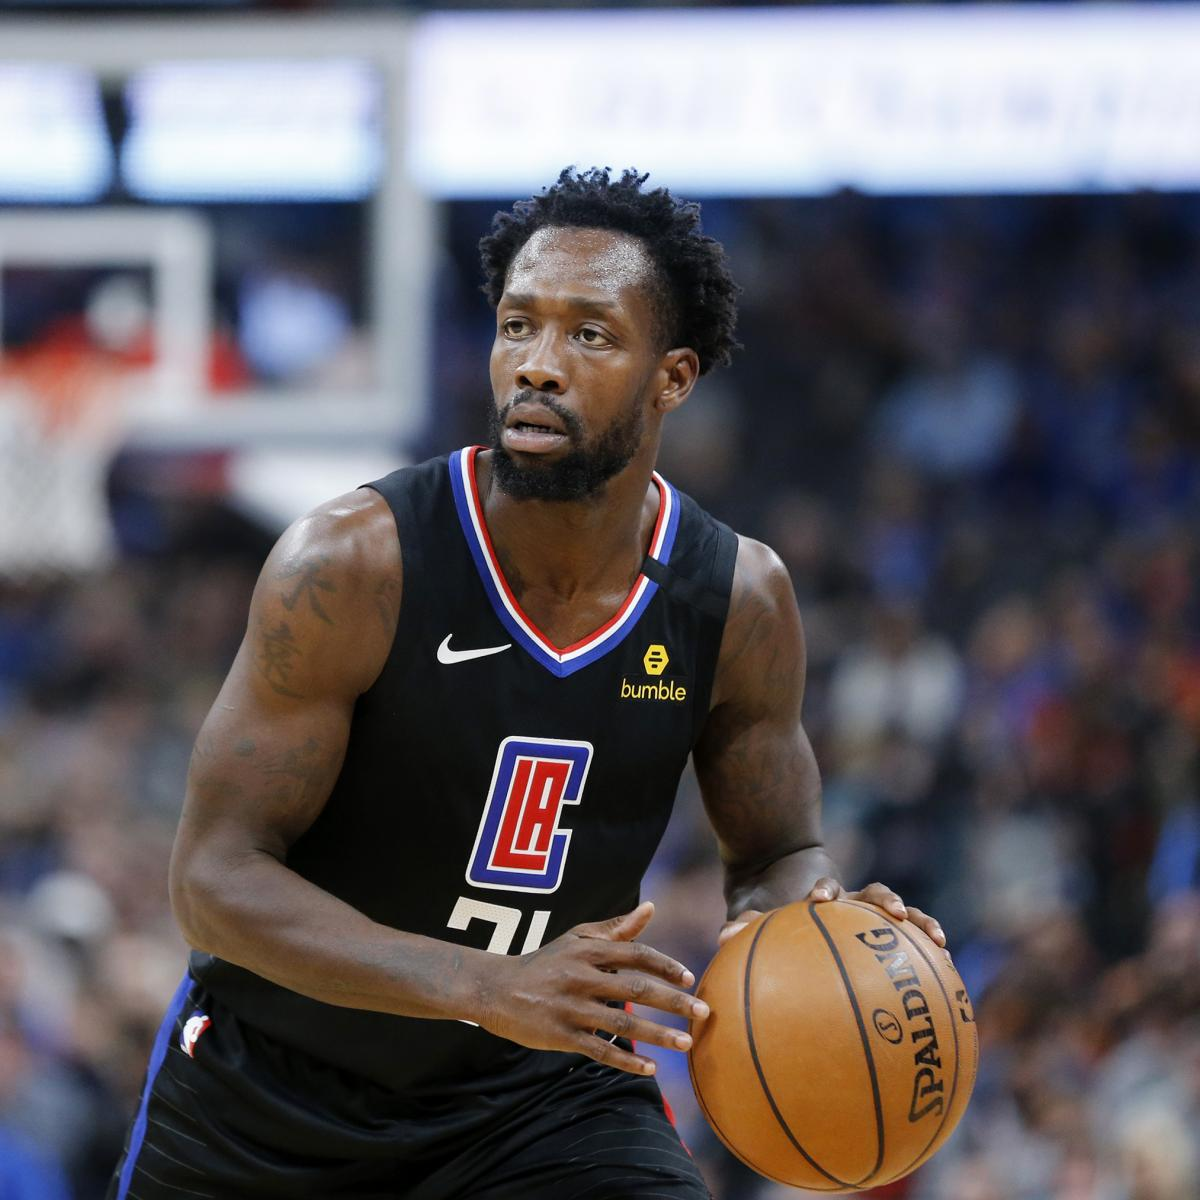 NBA Beverley Bubble  Clippers Patrick in Report: Rejoins